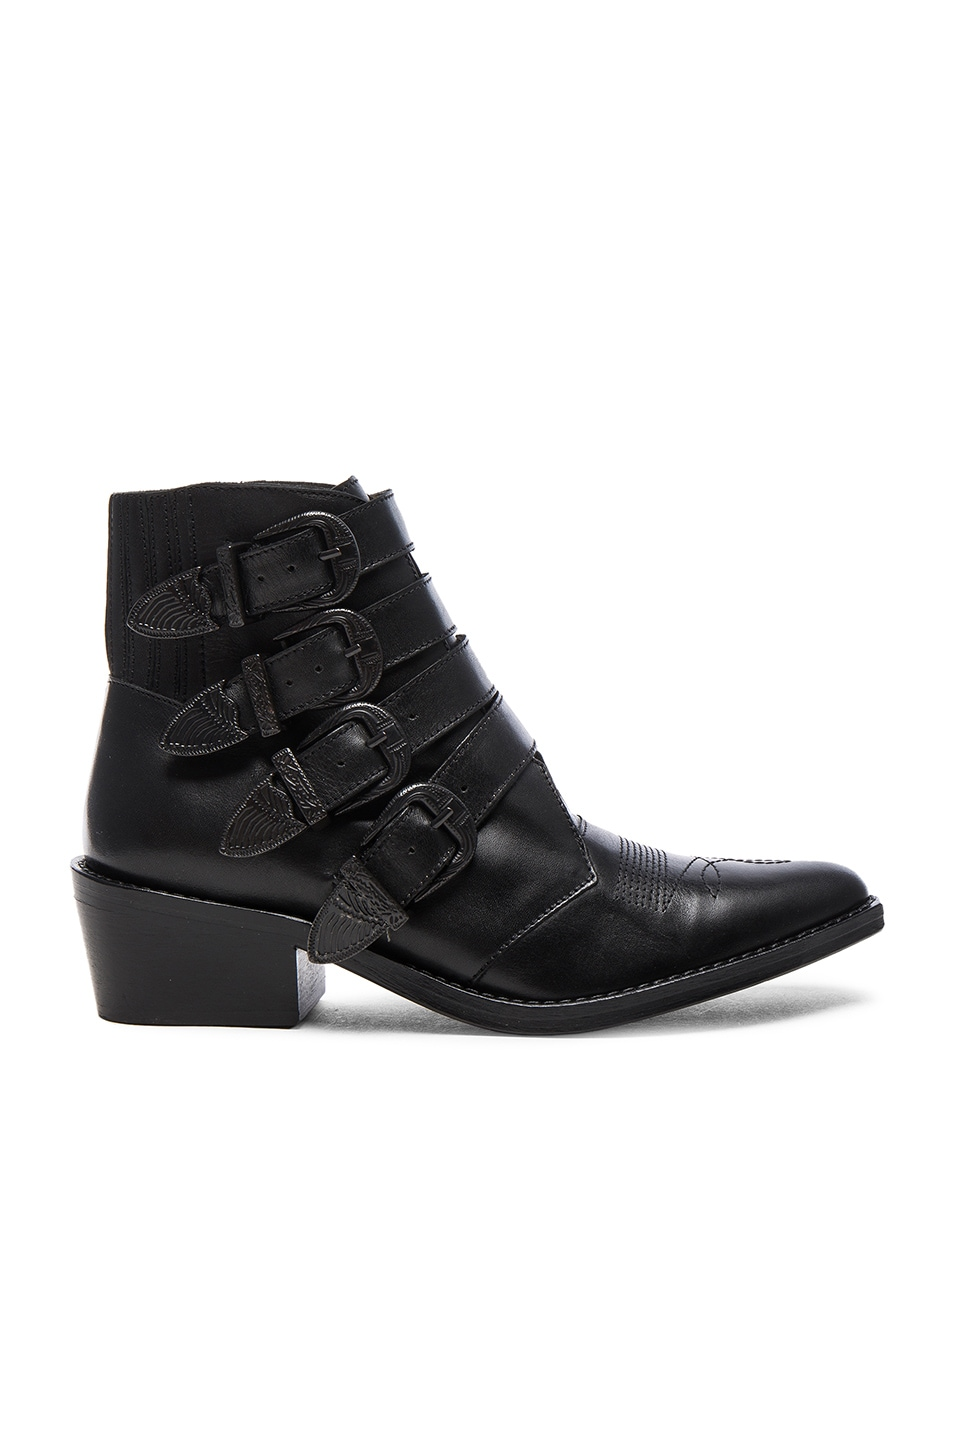 Image 1 of TOGA PULLA Buckled Leather Booties in Black Velvet